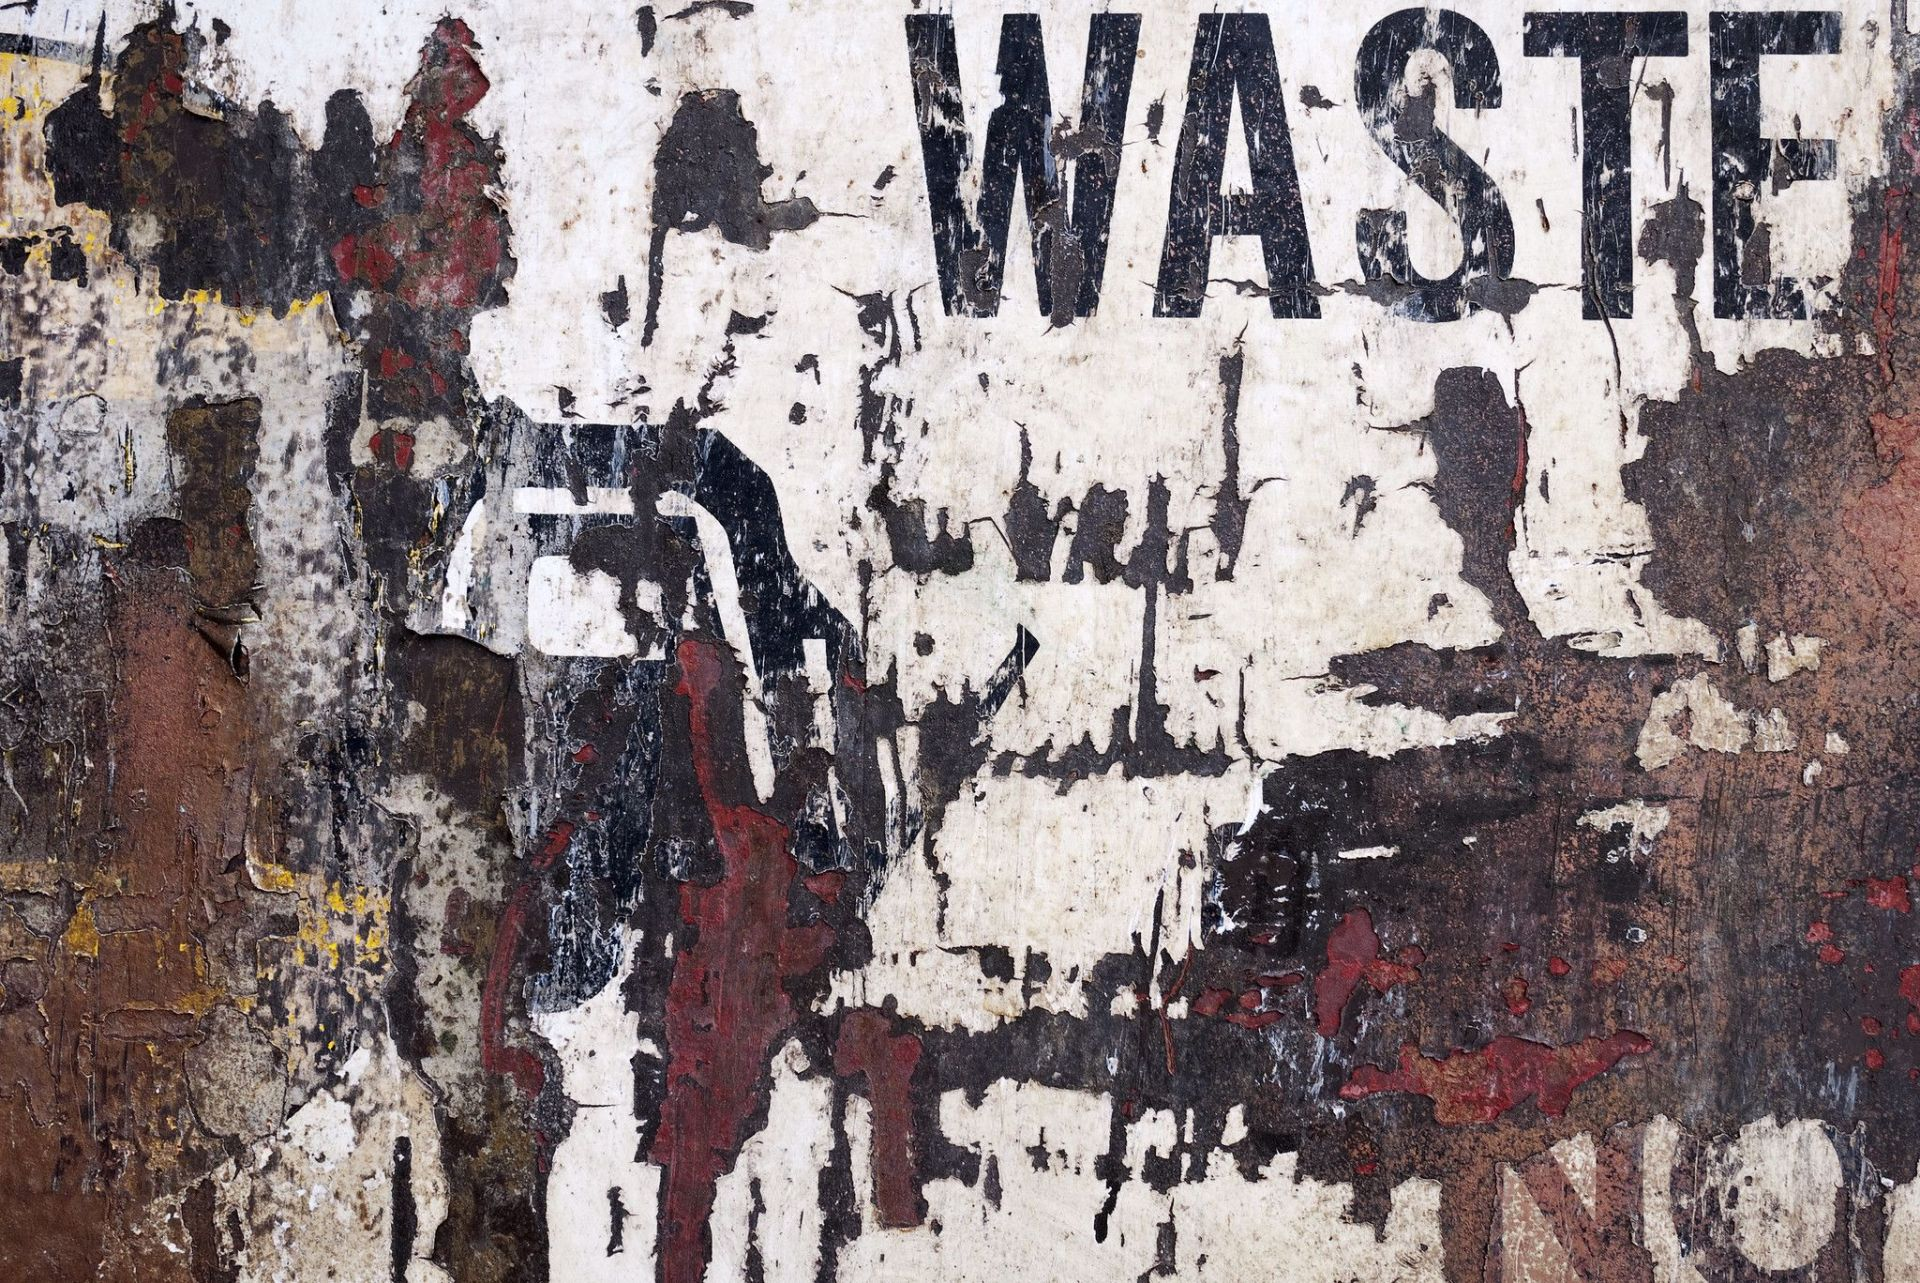 The country's waste management systems are creaking under pressure (Image: Grant Hutchison; Flickr Commons, CC BY-NC-ND 2.0)